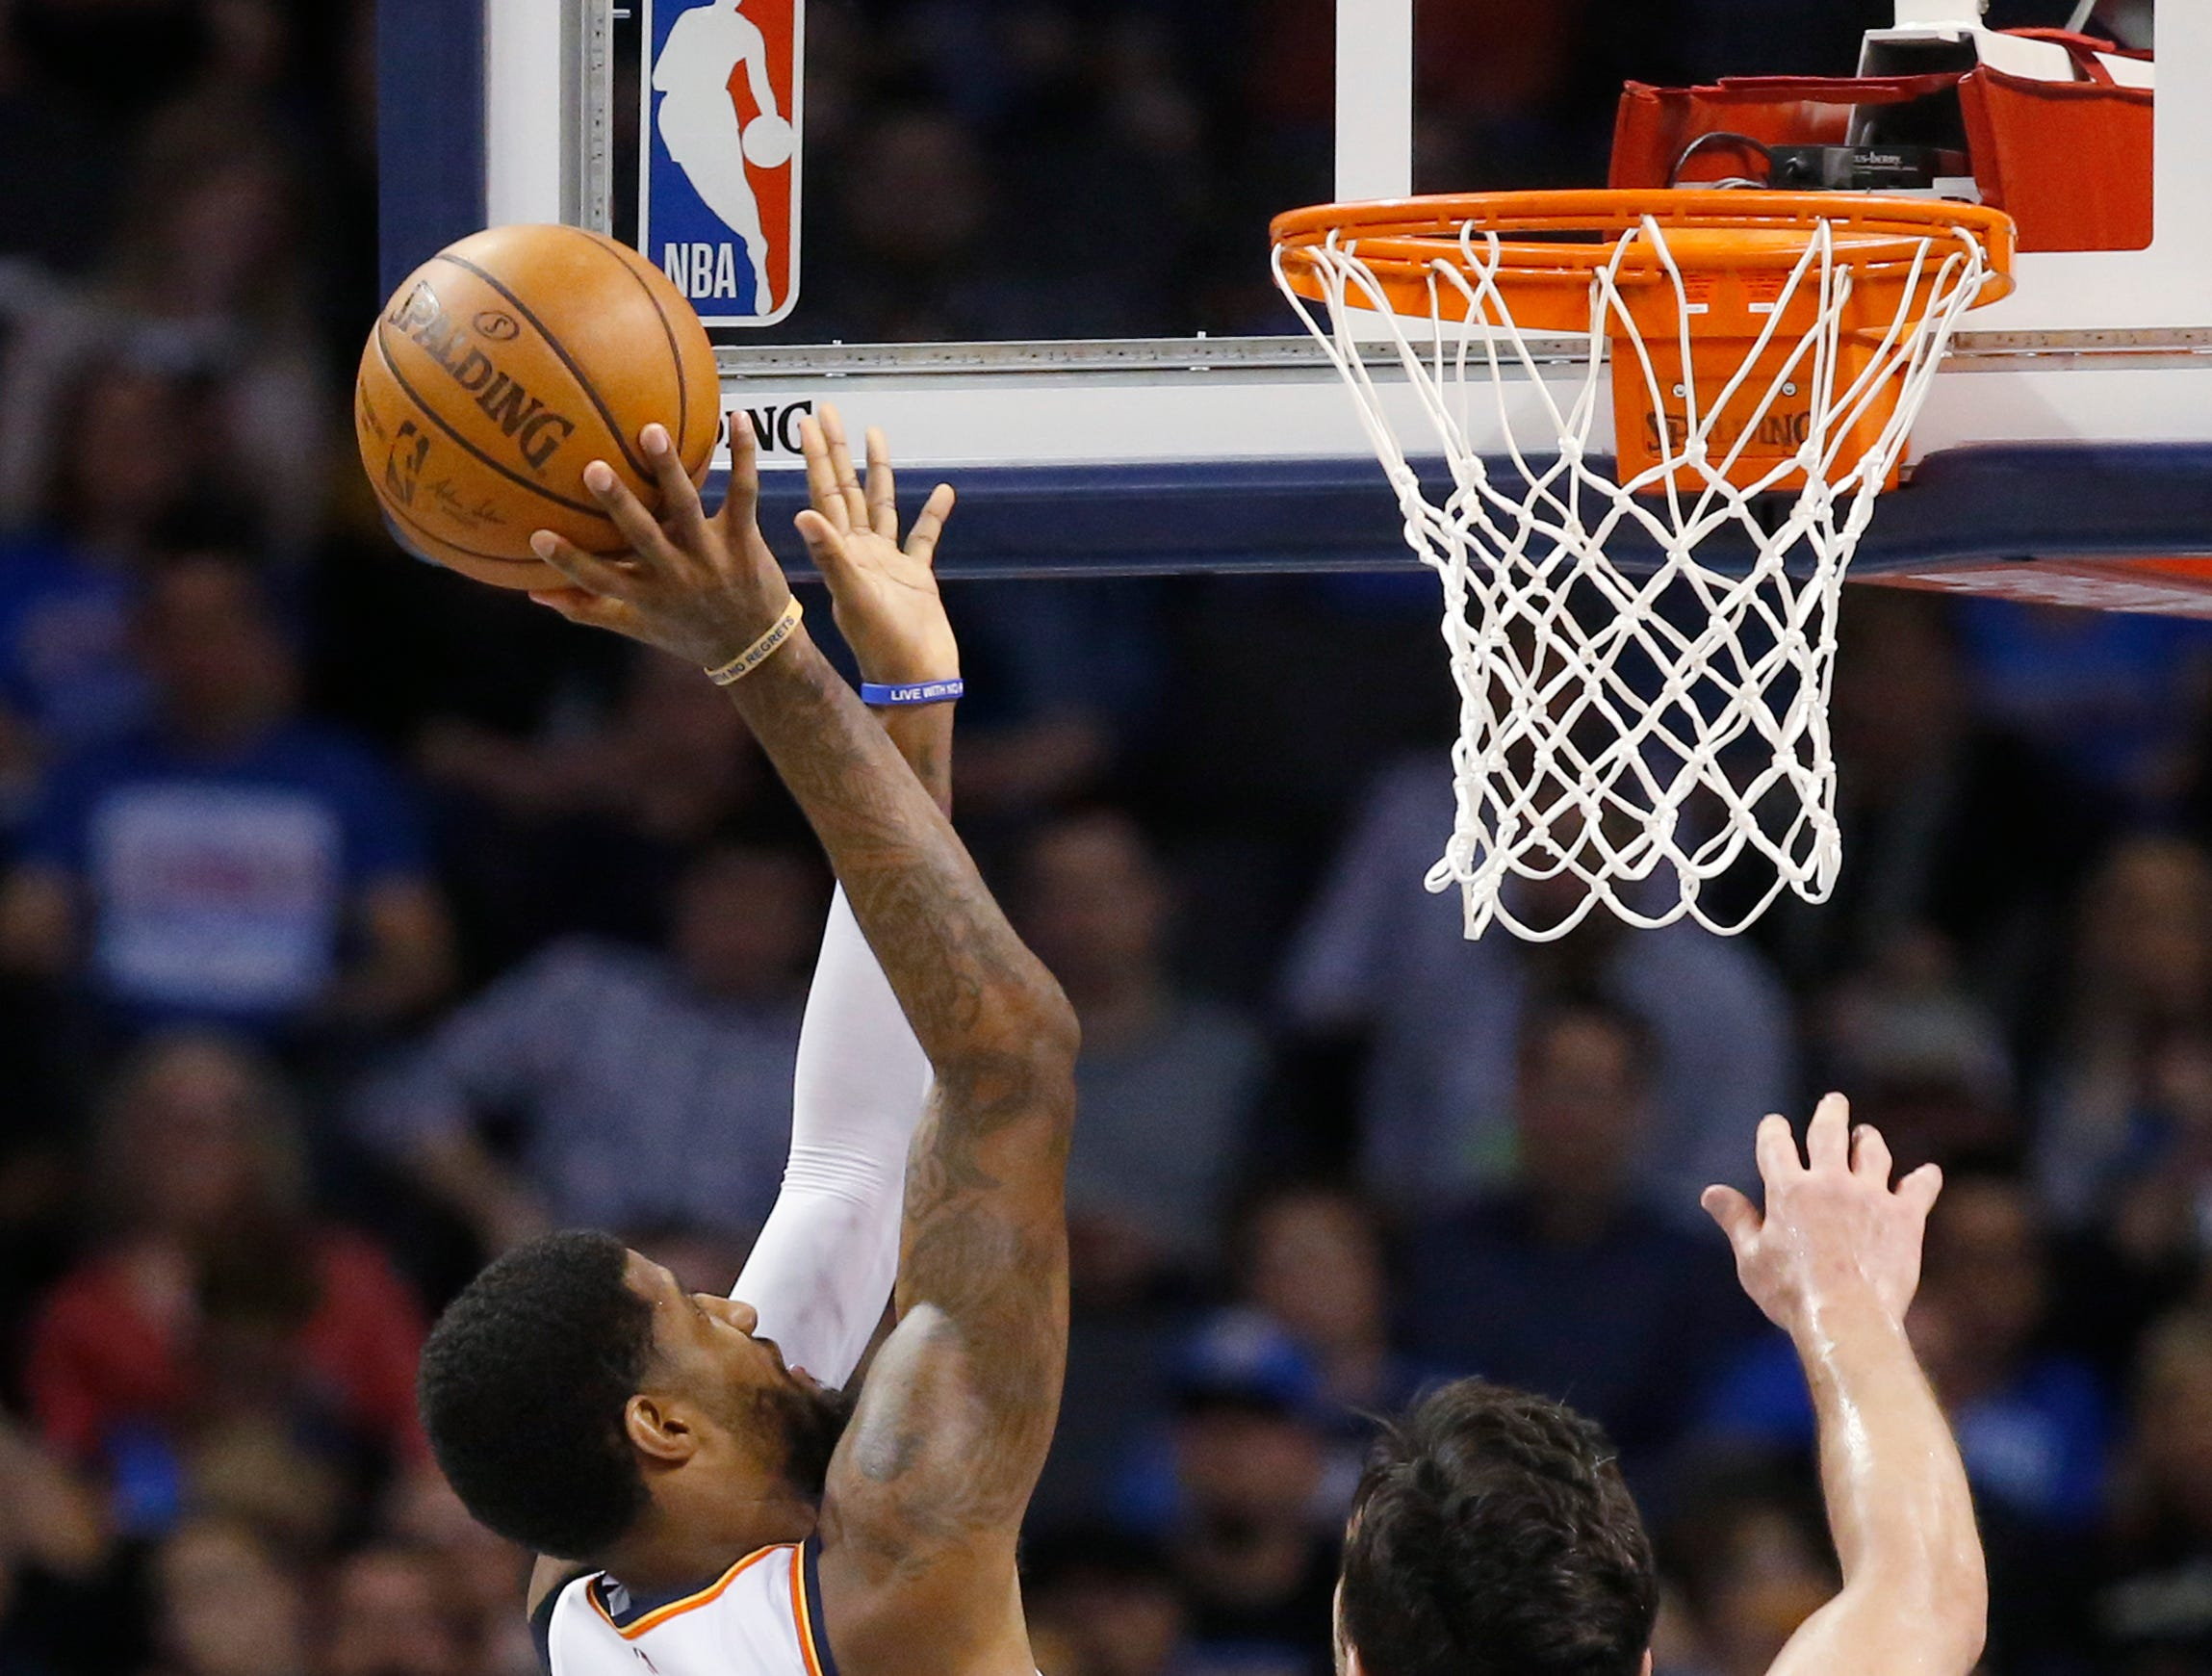 Oklahoma City Thunder forward Paul George, left, shoots in front of teammate Markieff Morris (5) and Detroit Pistons center Zaza Pachulia (27) during the first half.